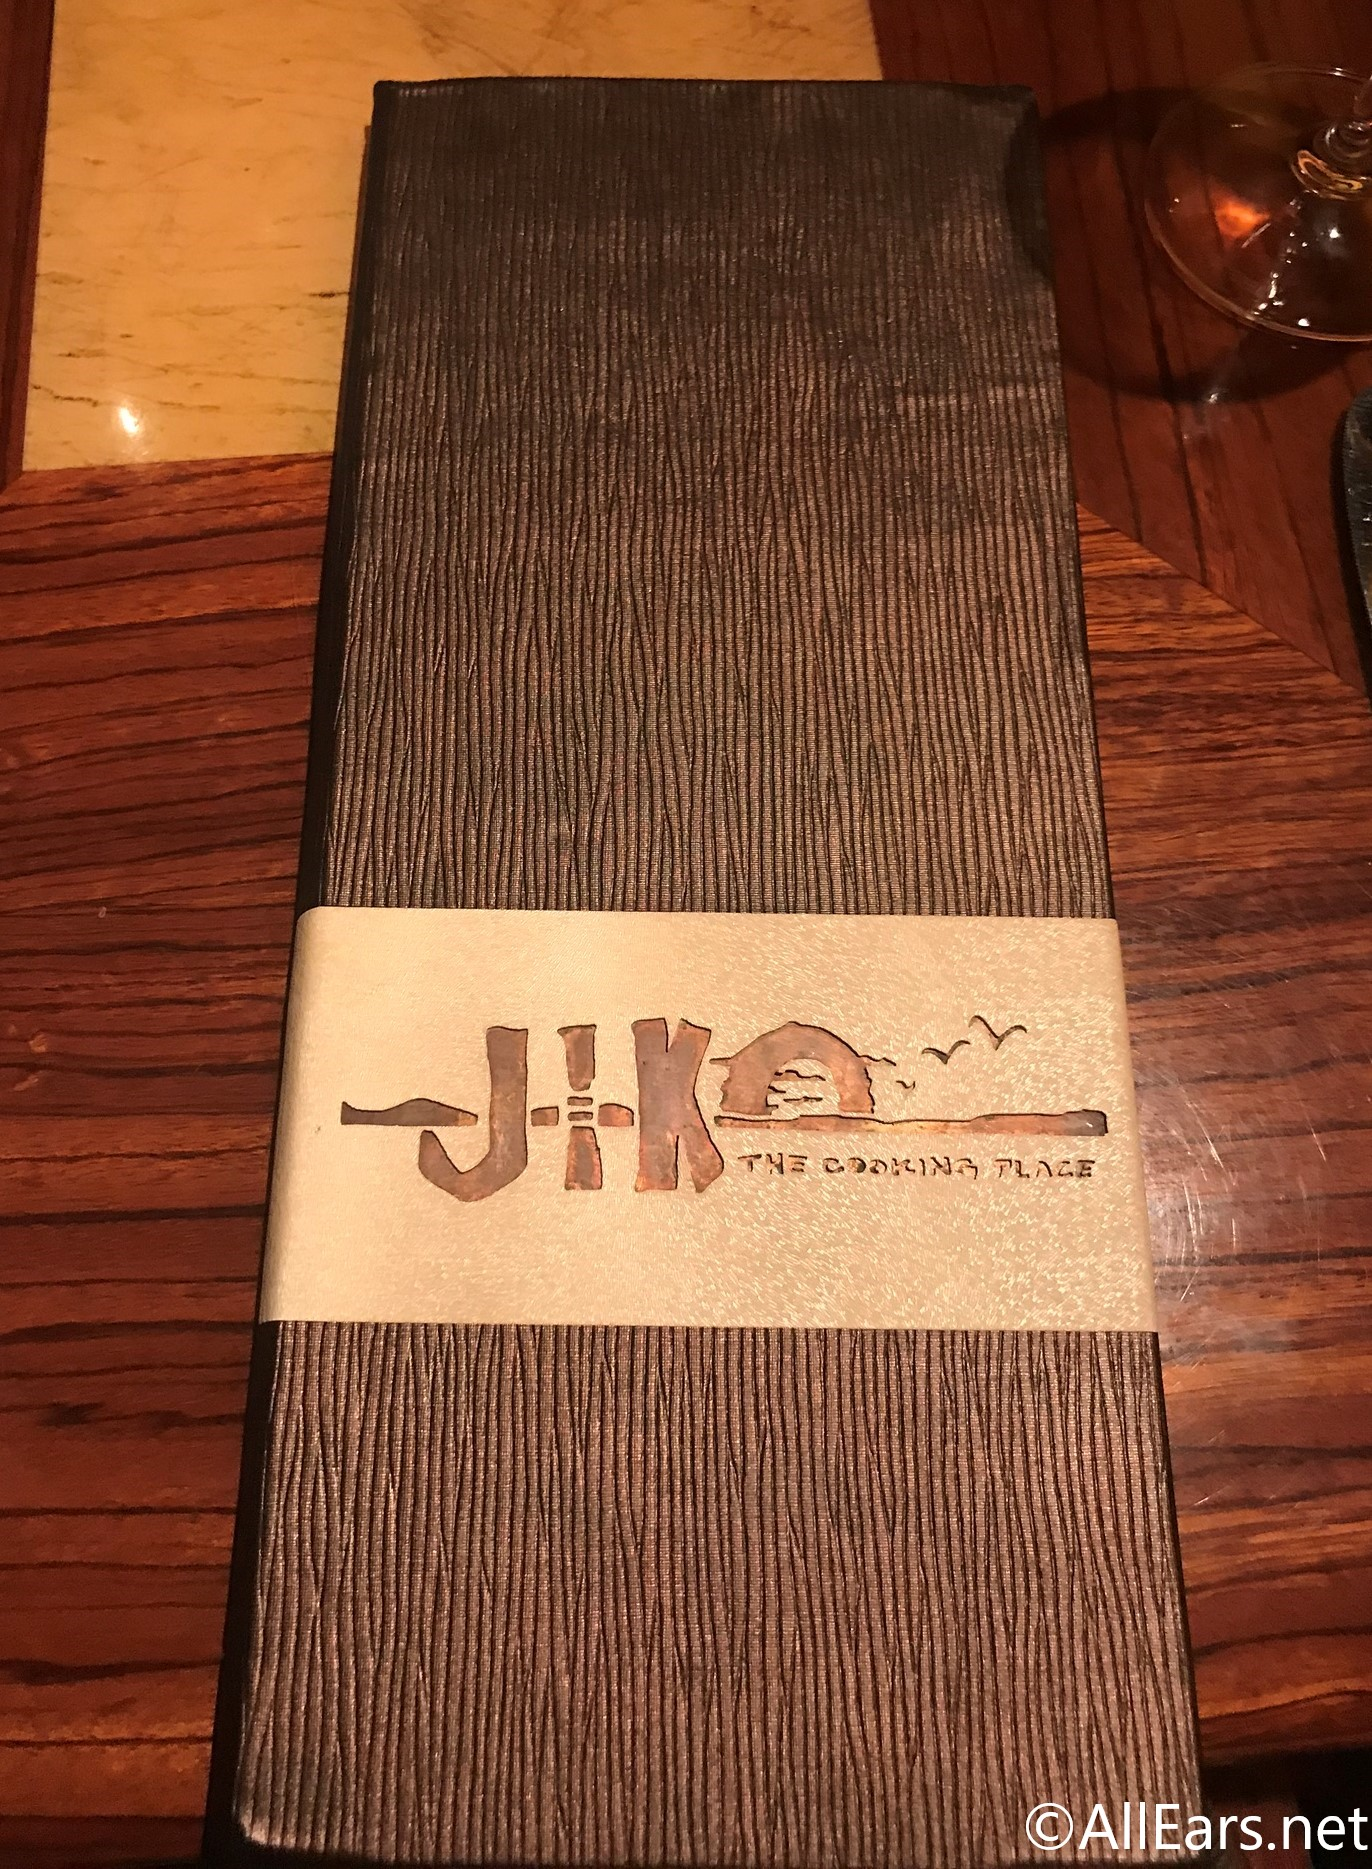 Interior Pictures of Jiko - The Cooking Place in Disney World - AllEars.Net